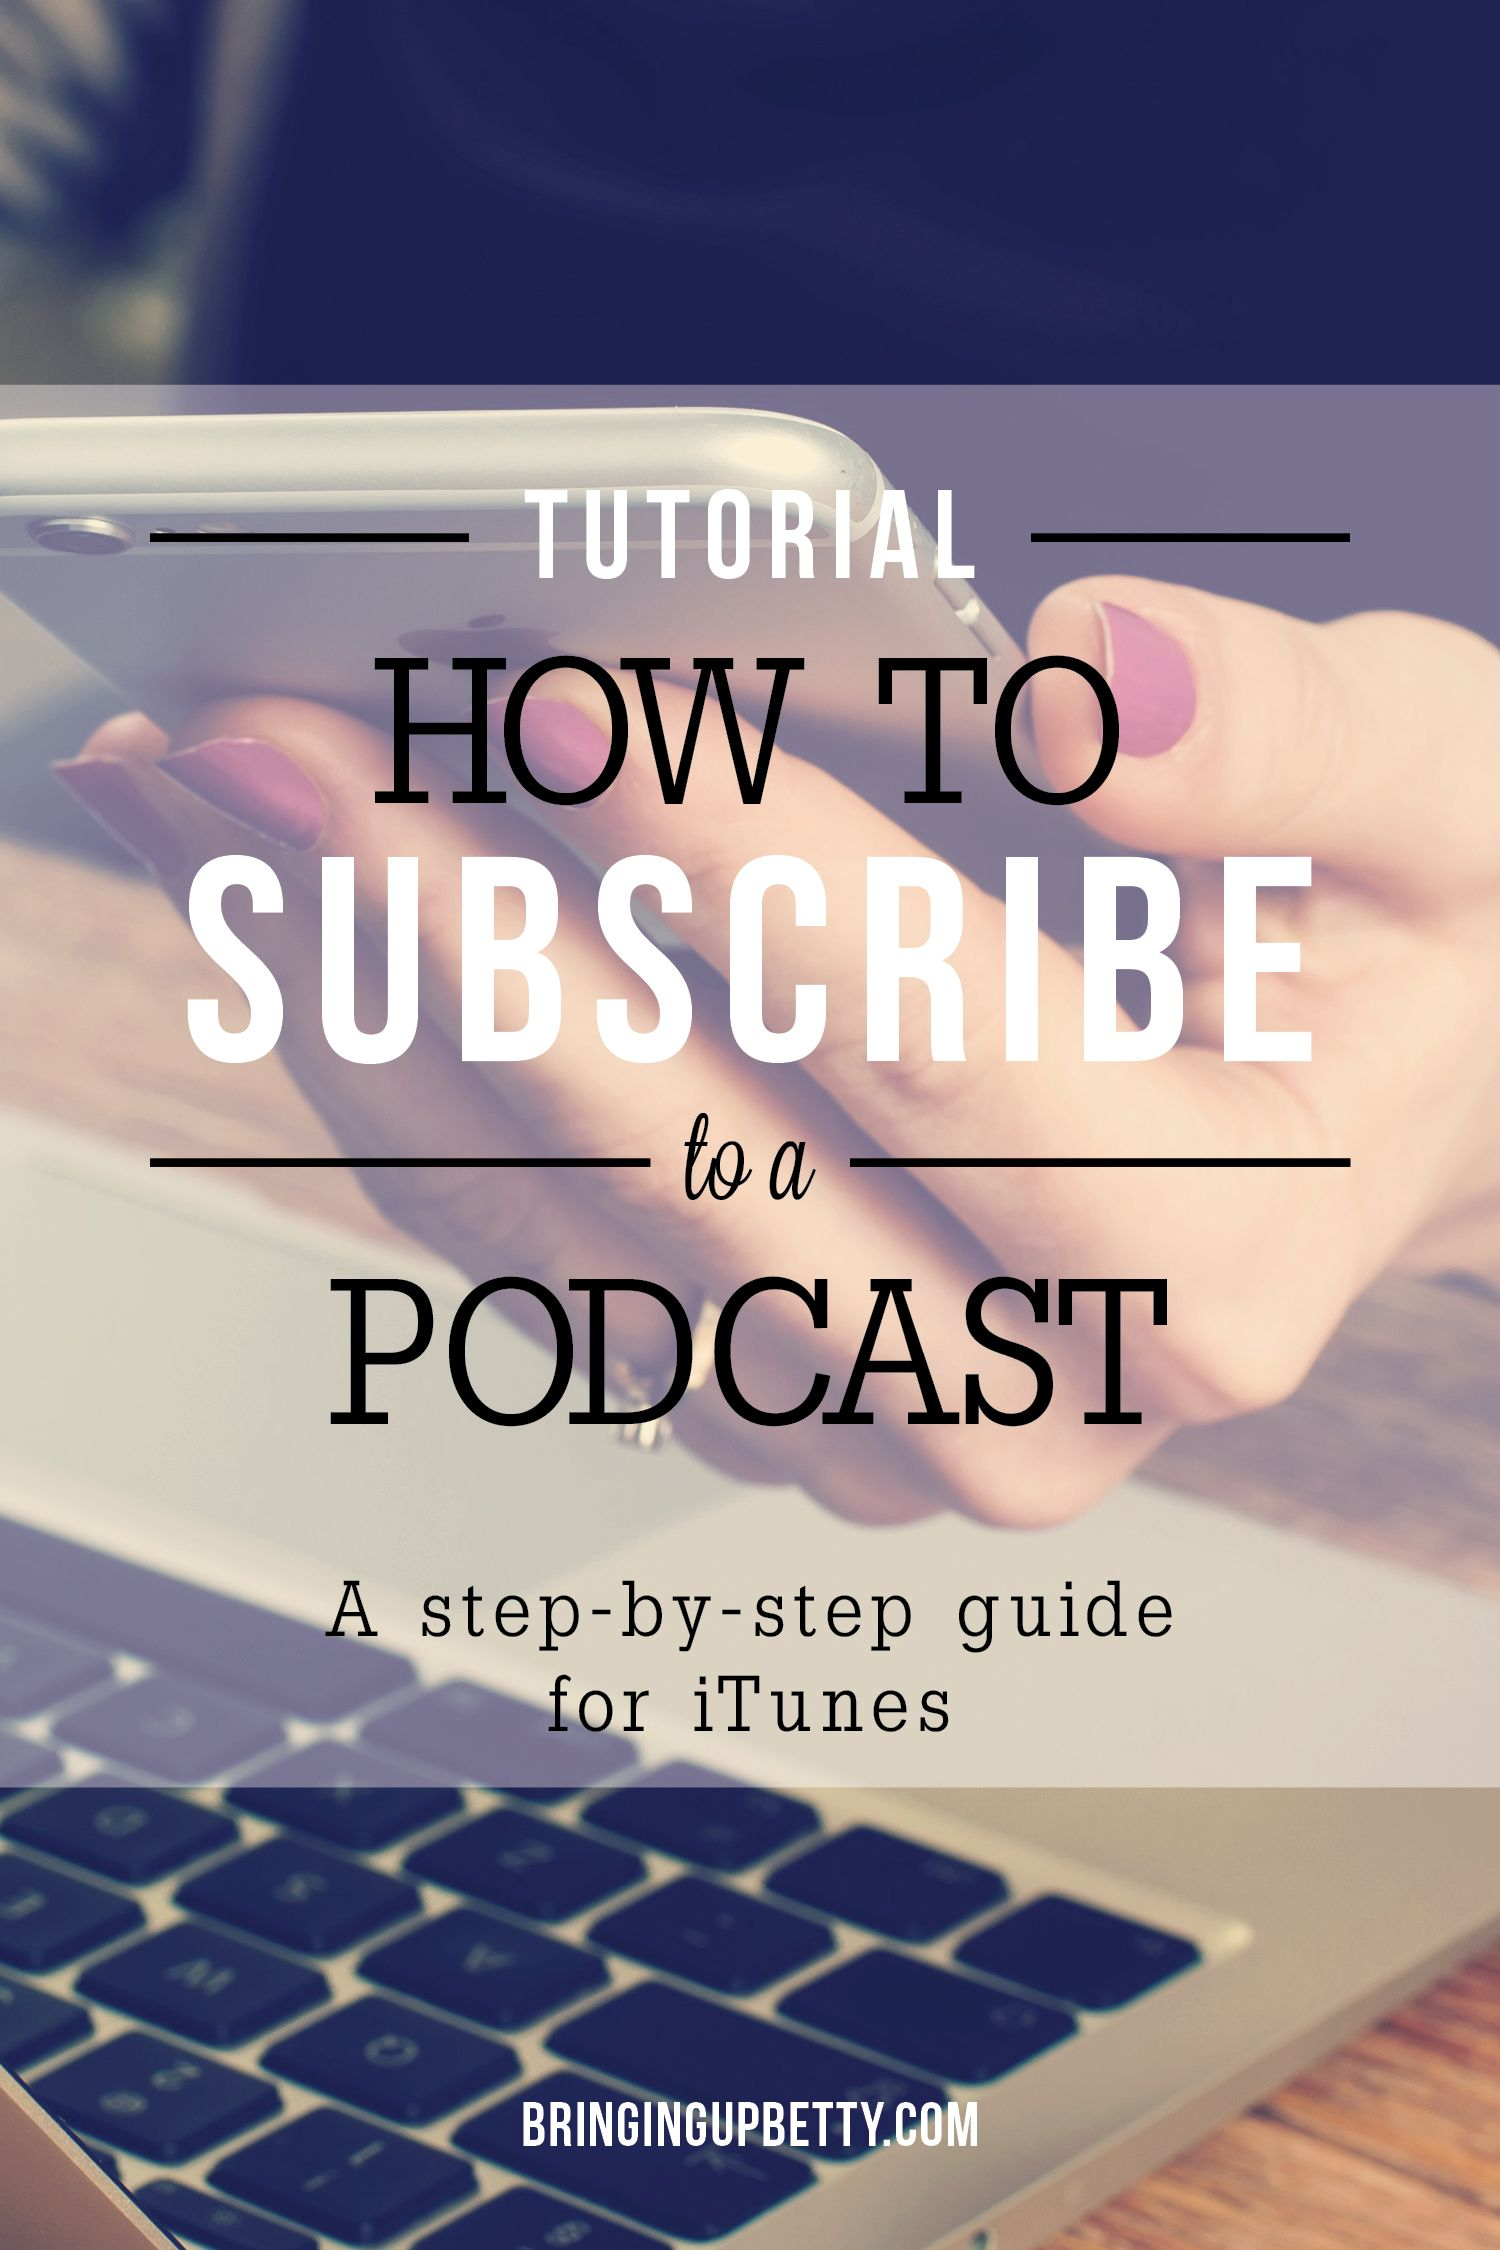 How to Subscribe to the Podcast in iTunes Parenting